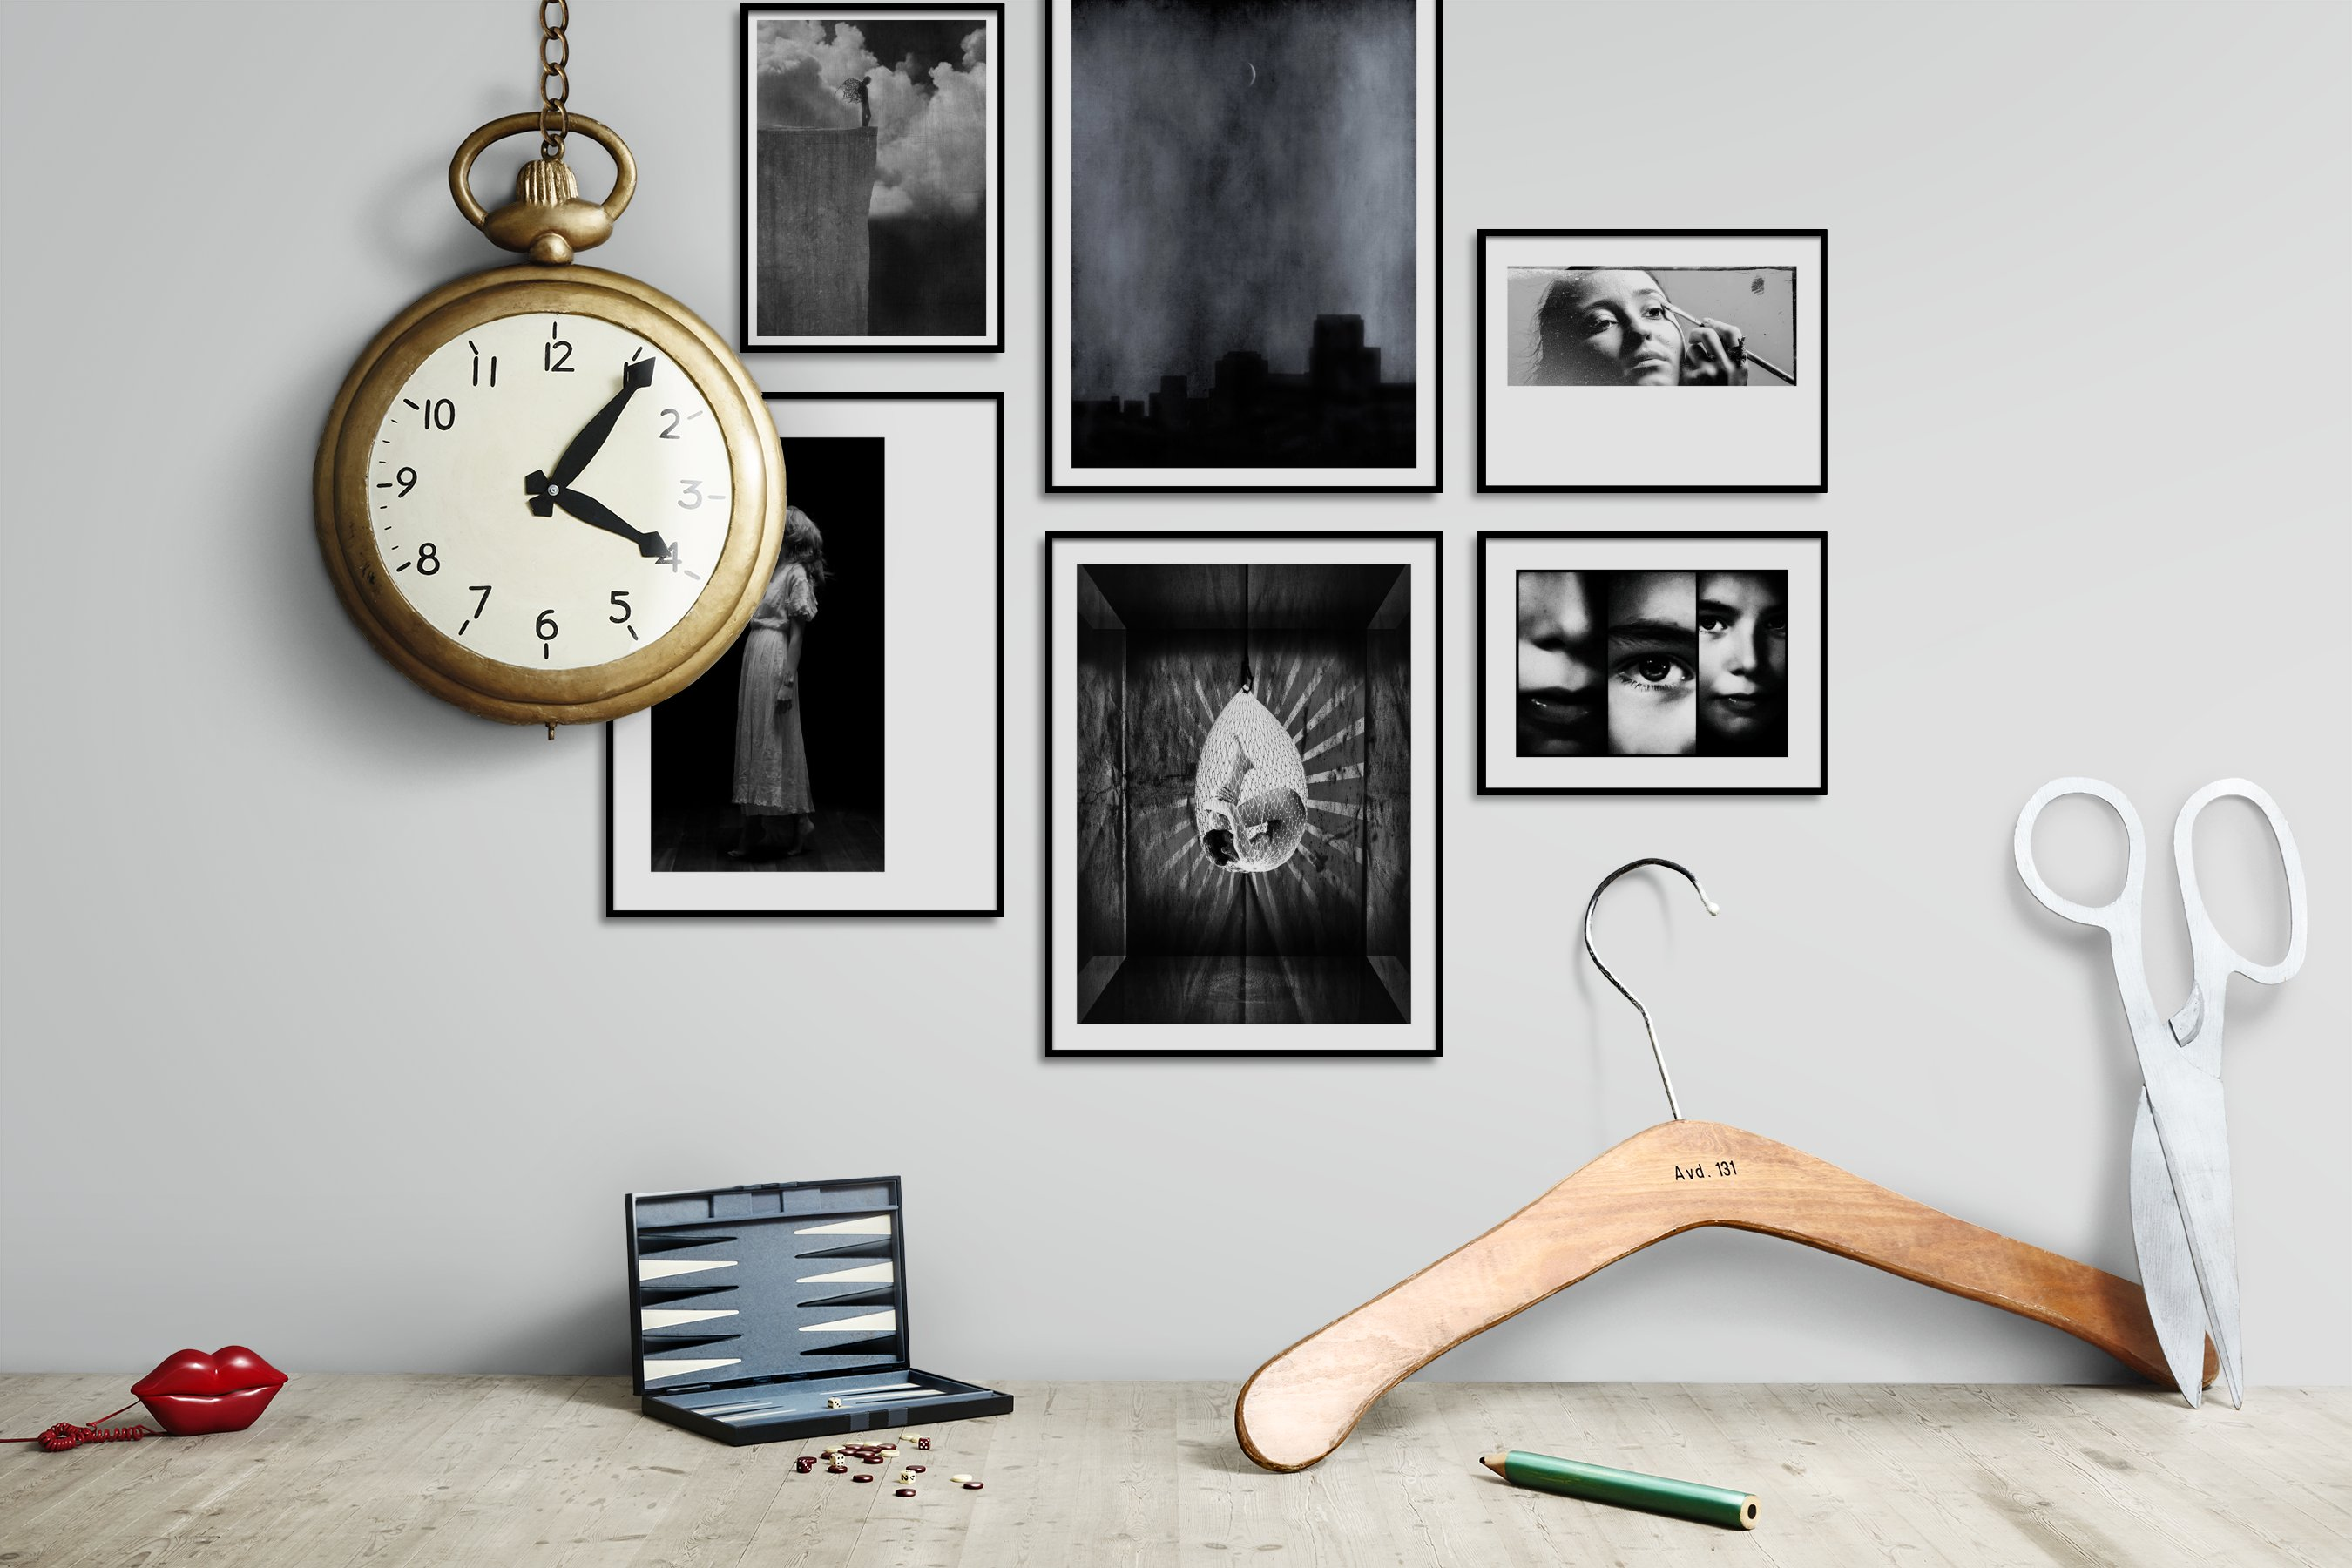 Gallery wall idea with six framed pictures arranged on a wall depicting Fashion & Beauty, Black & White, For the Minimalist, and Artsy